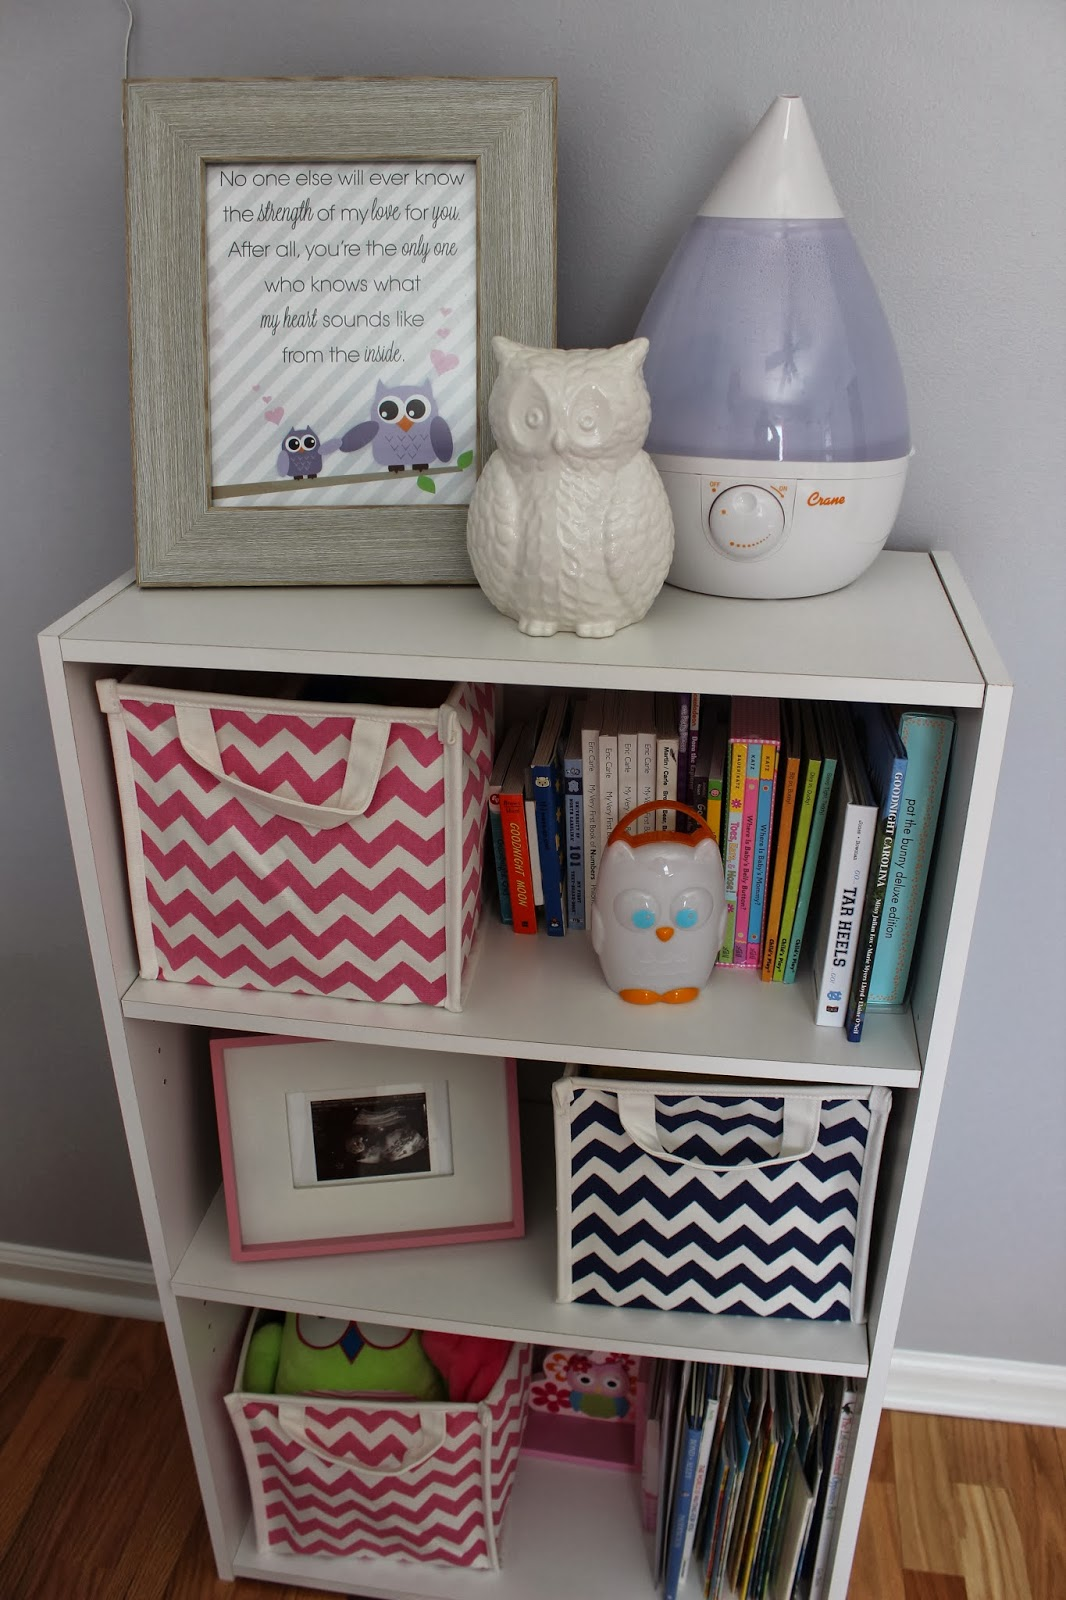 The owl print on the top shelf has one of my favorite quotes: #733939